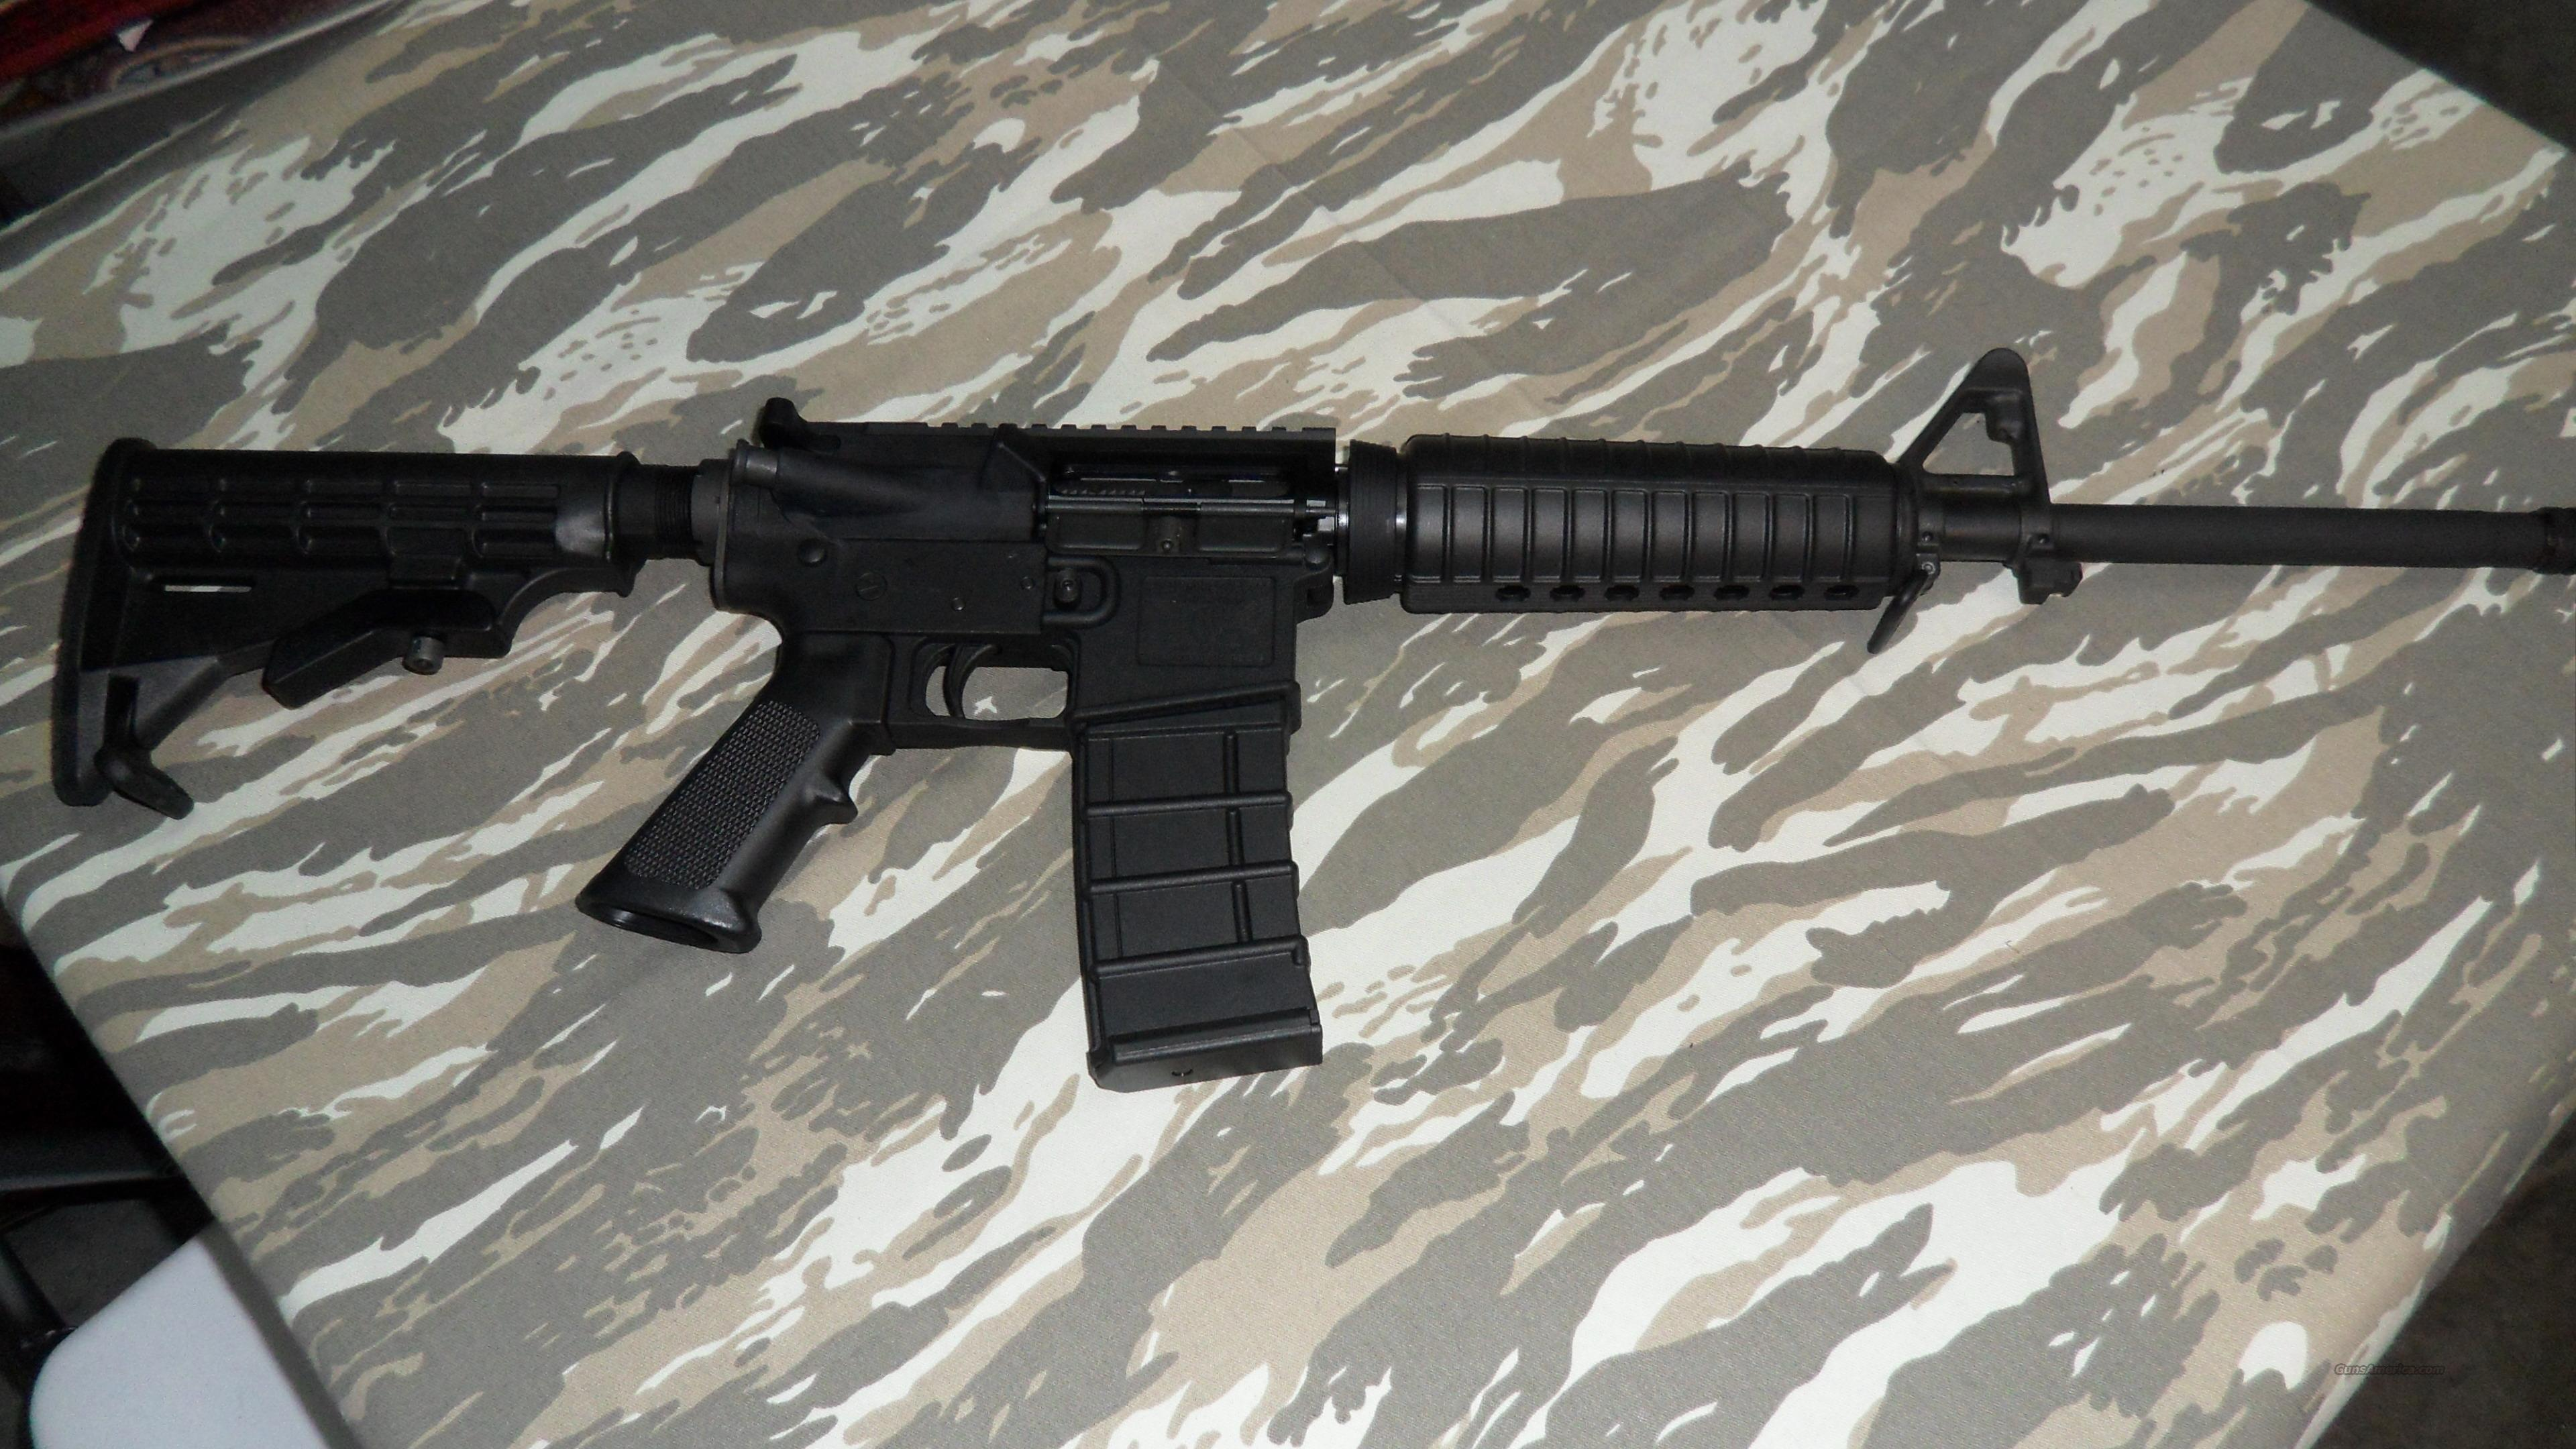 PCF LOWER FREE UPPER  Guns > Rifles > AR-15 Rifles - Small Manufacturers > Complete Rifle